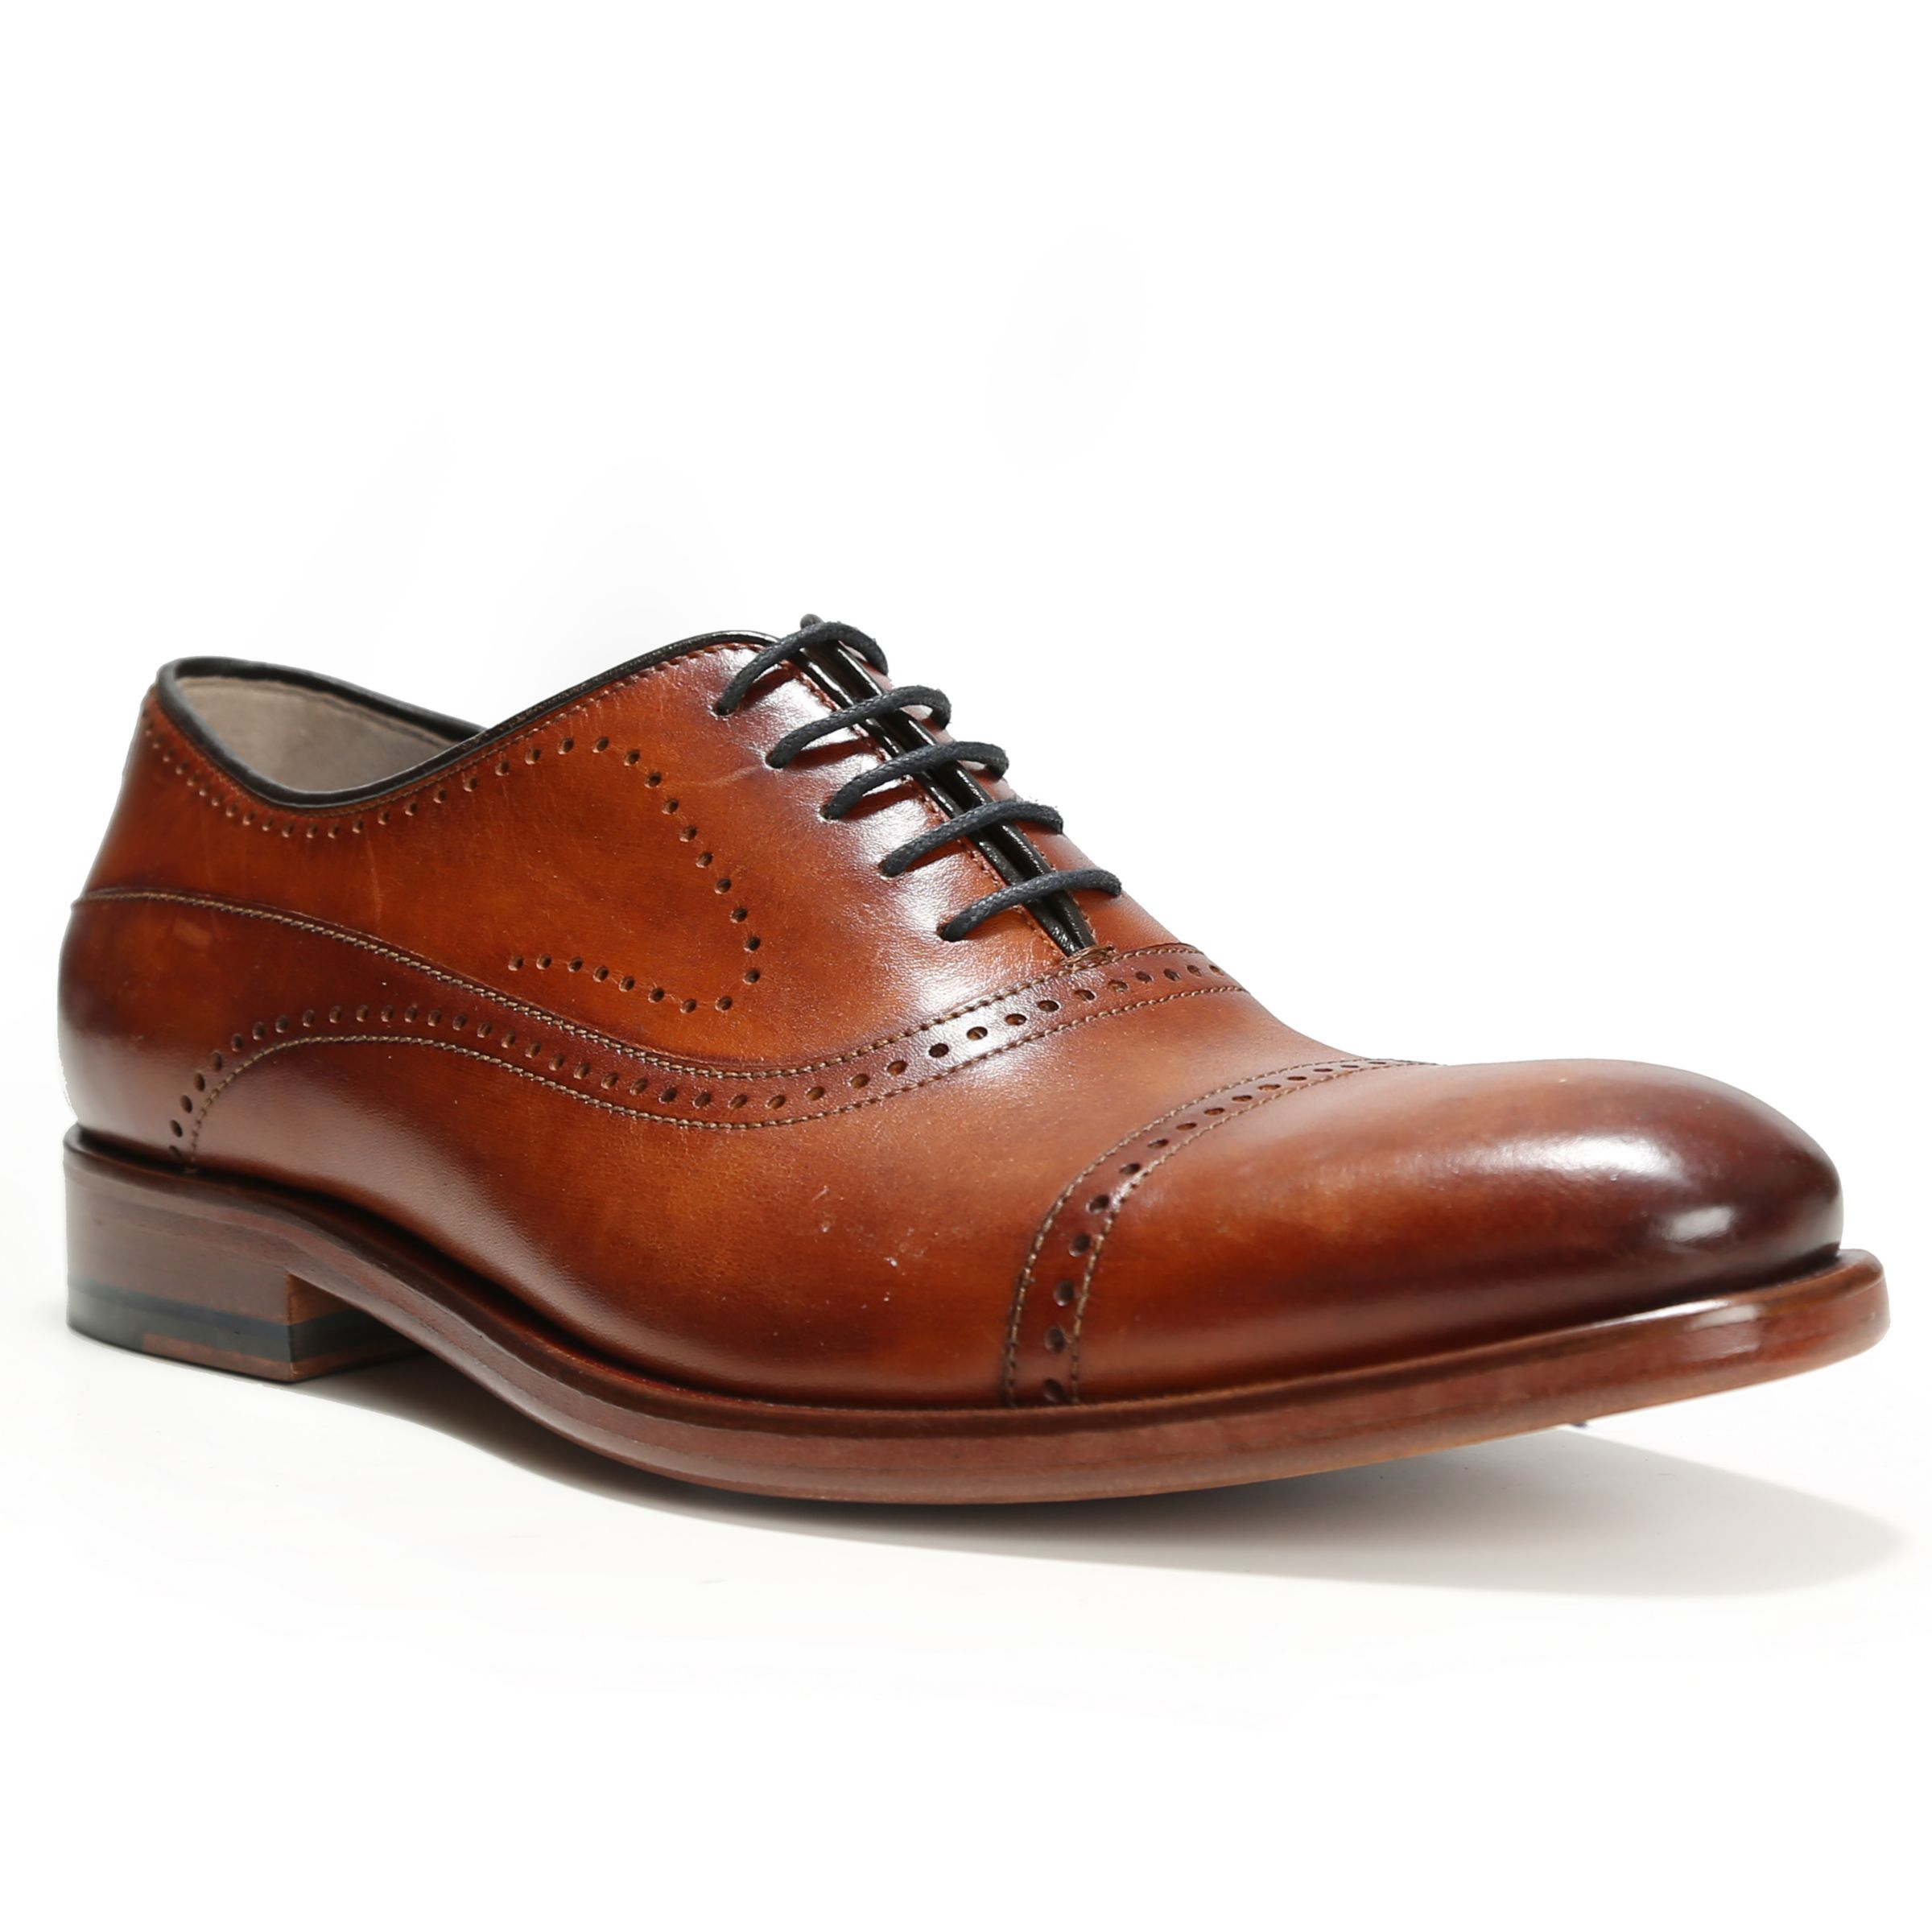 Oliver Sweeney Oliver Sweeney Mallory Oxford Shoes, Tan